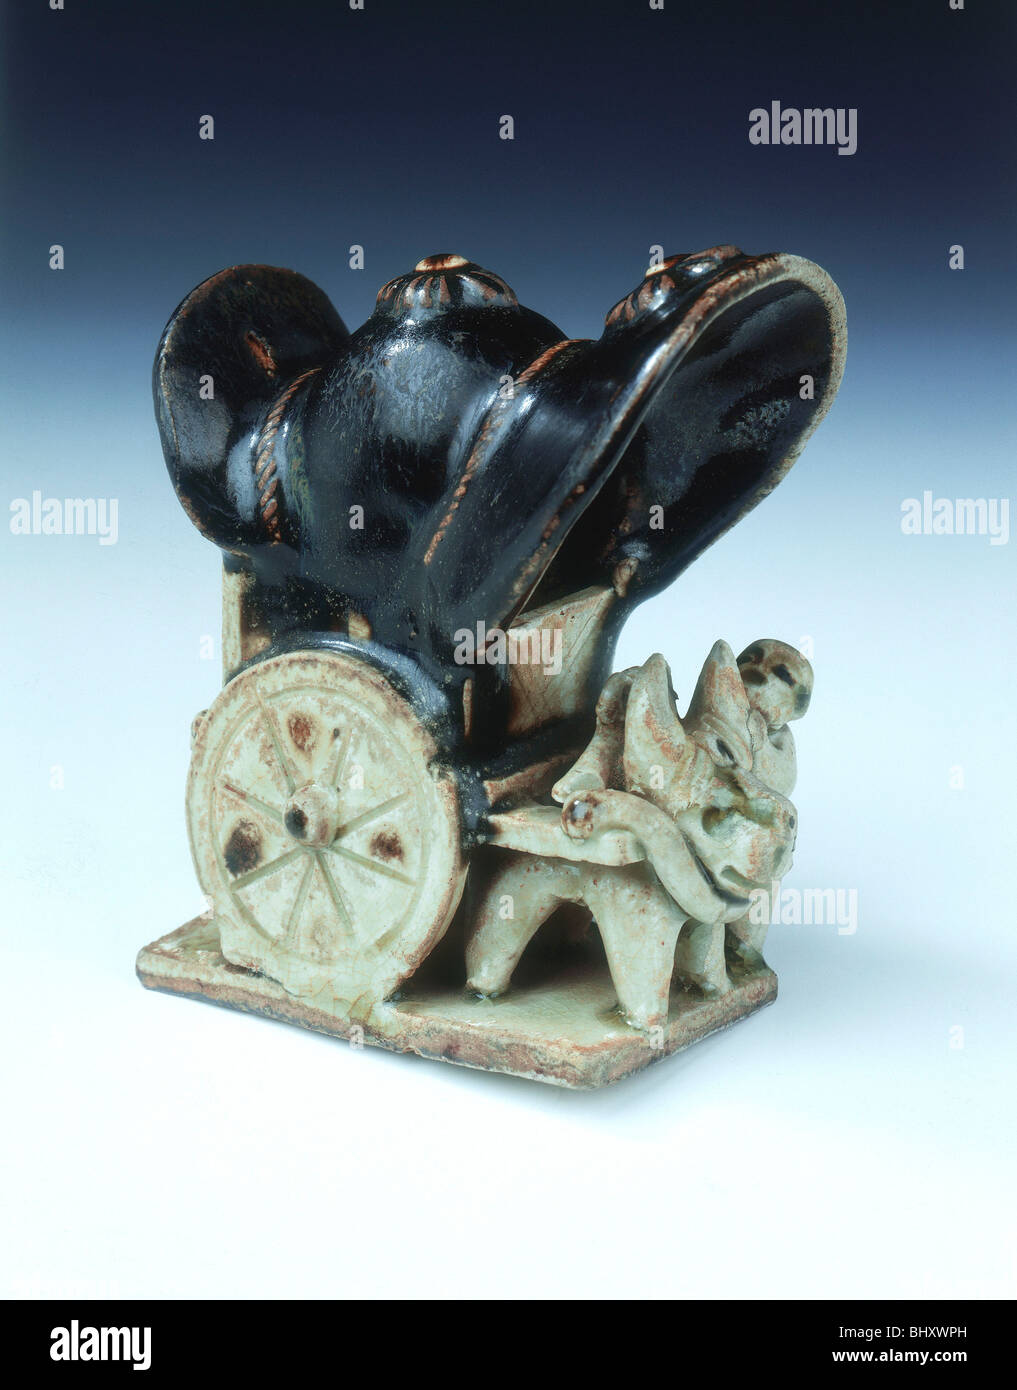 Ox-drawn covered wagon with lady passenger, late Tang dynasty, China, 9th century. - Stock Image